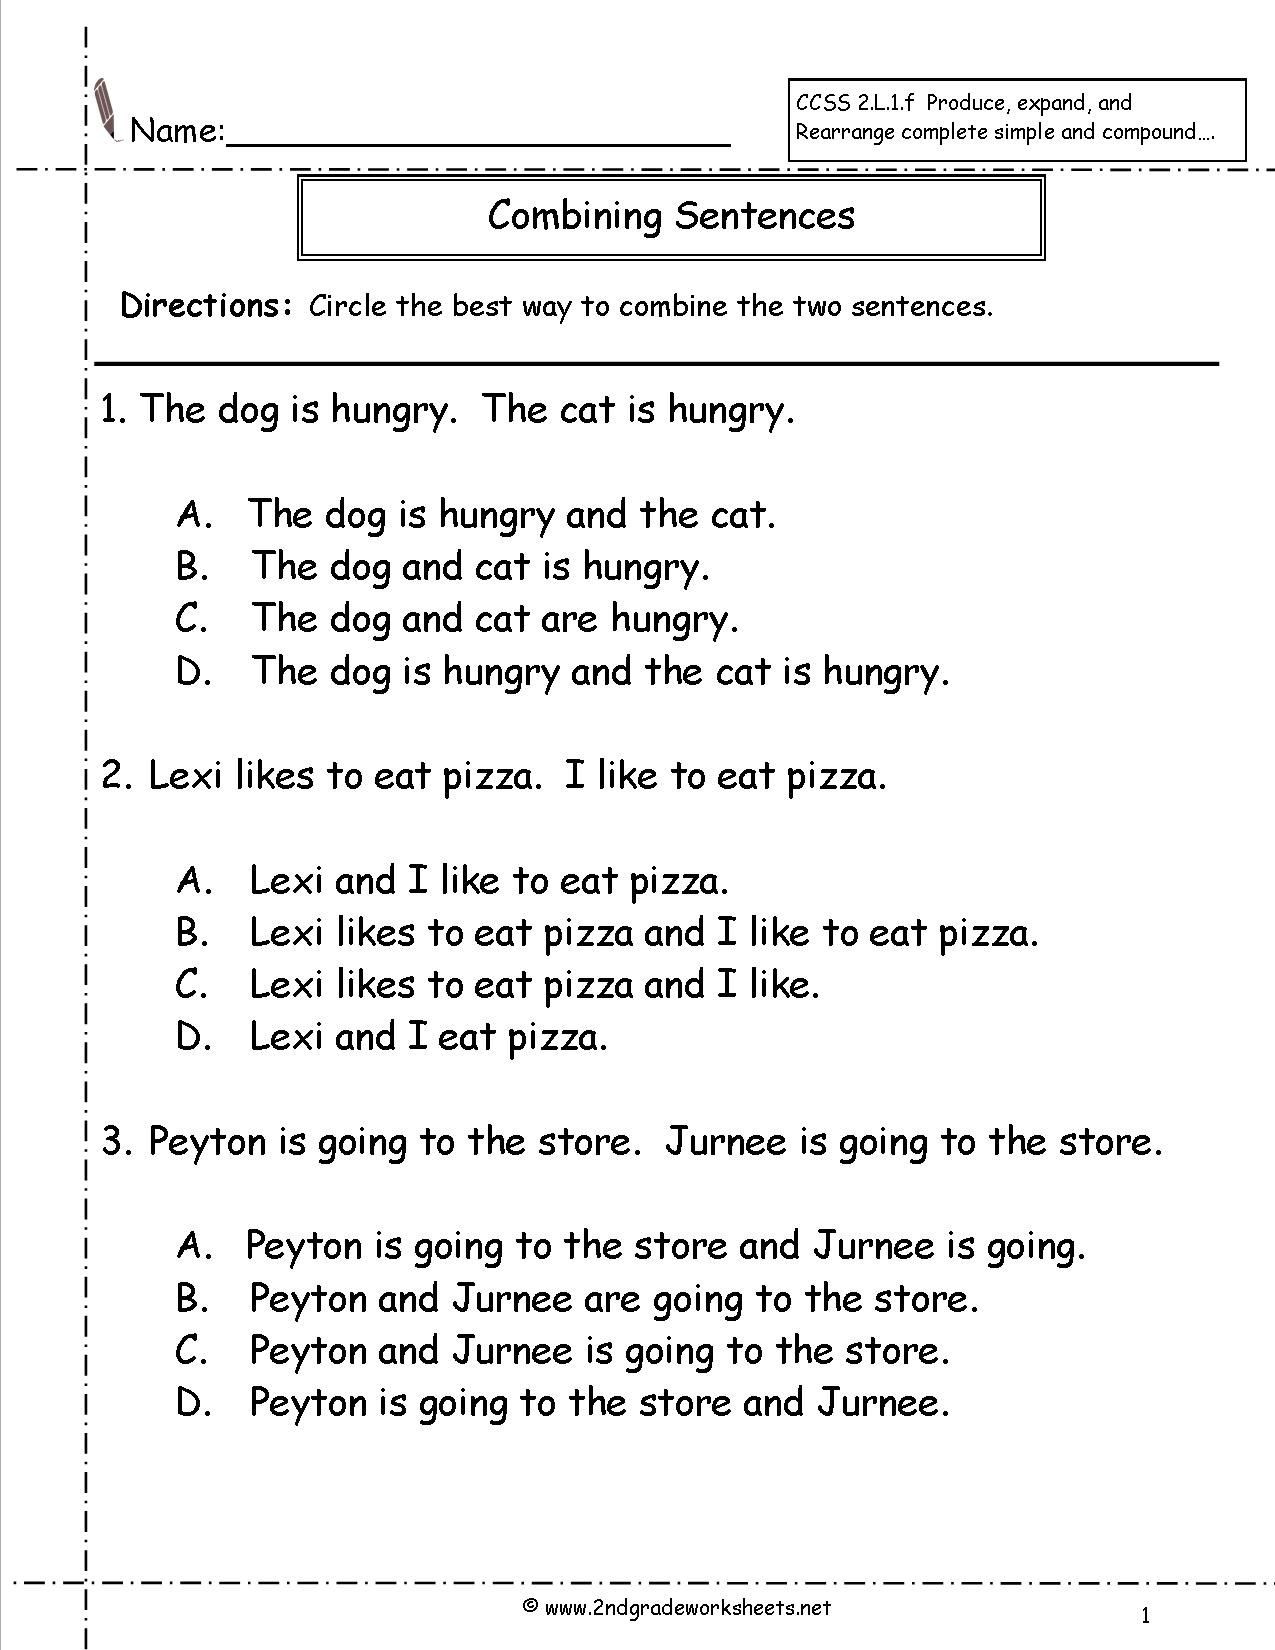 Compound Sentences Worksheet with Answers Bining Sentences Worksheet